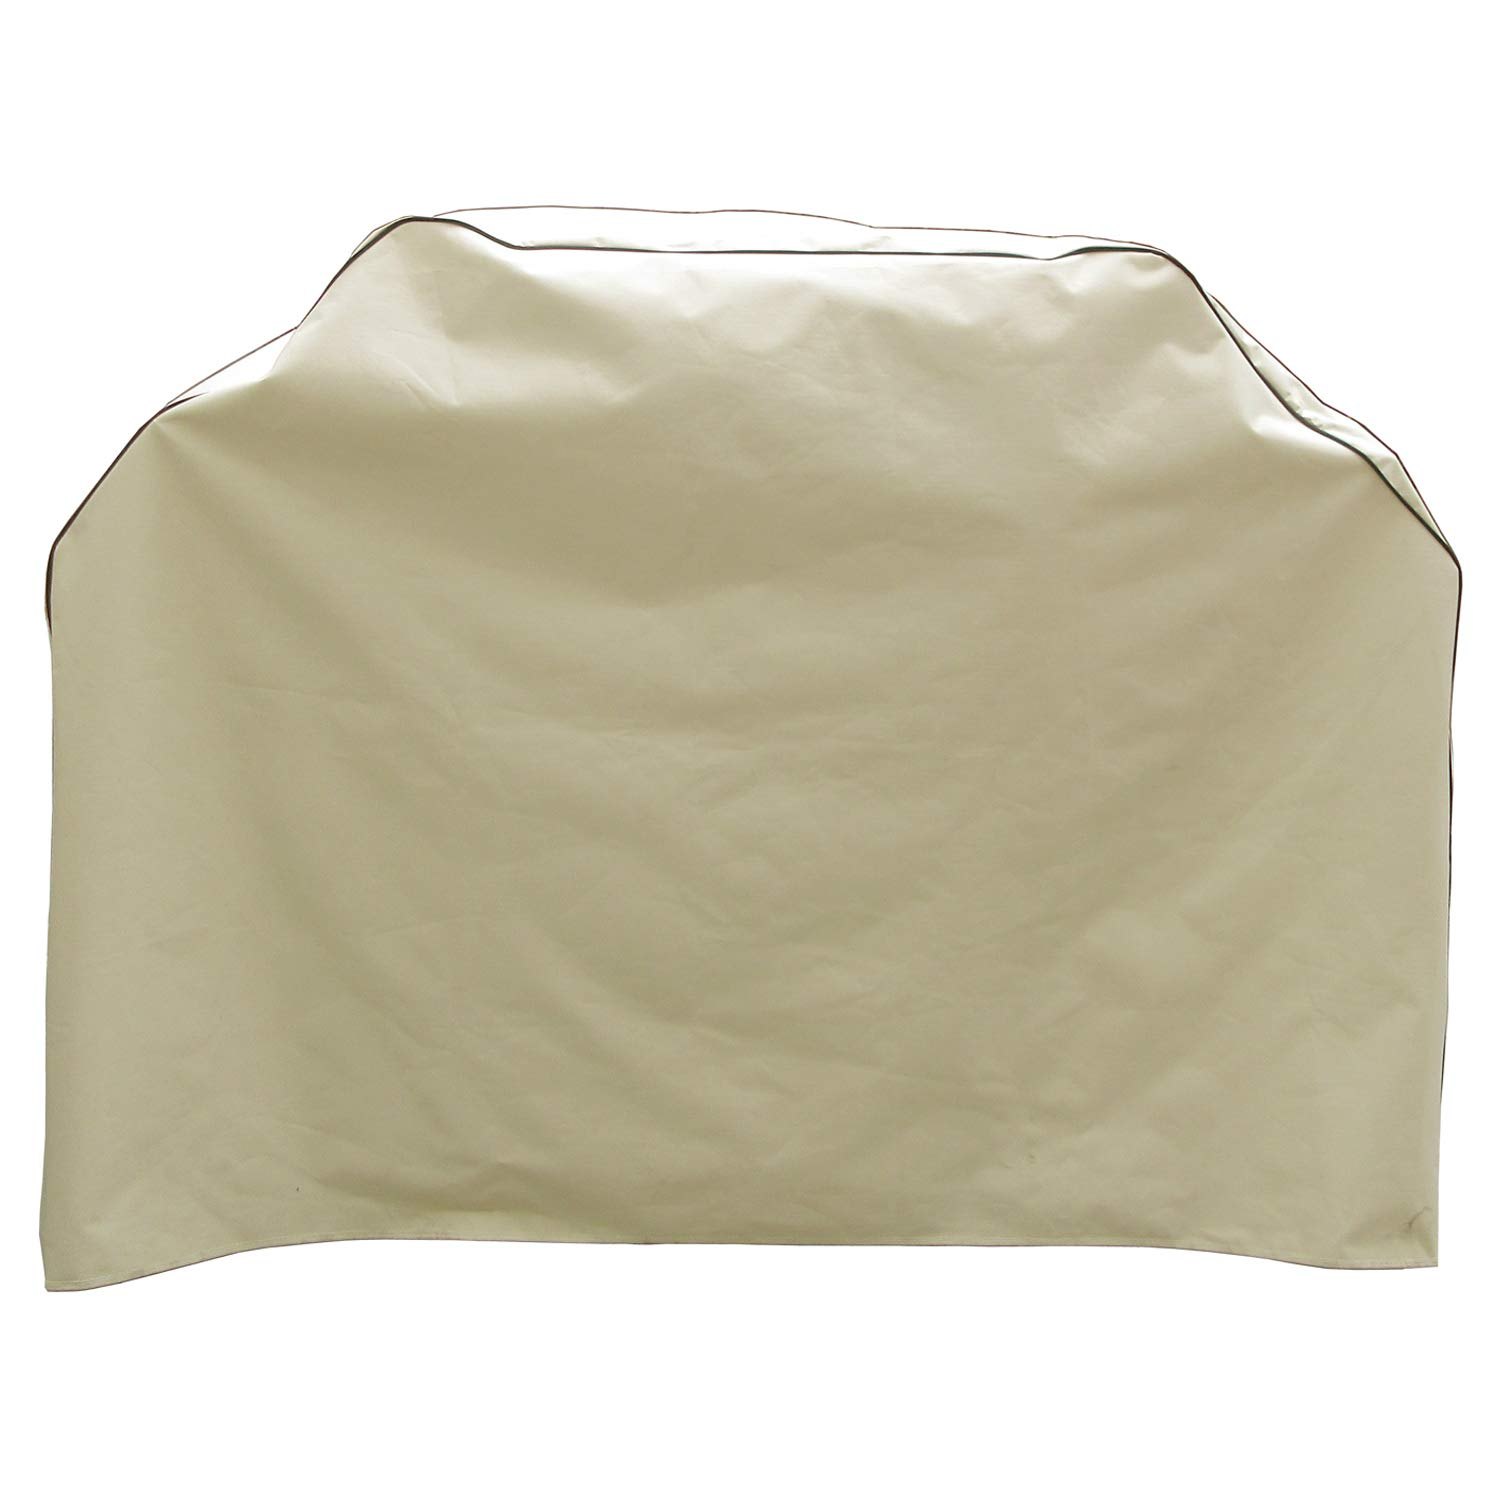 Direct store Parts DF952 Waterproof Heavy Duty BBQ Grill Cover for Weber (Genesis) Charmglow Brinkmann Jennair Uniflame Lowes and Other Grills (Medium,Large,X-Large,XX-Large) (XXL 72*26*51) by Direct store